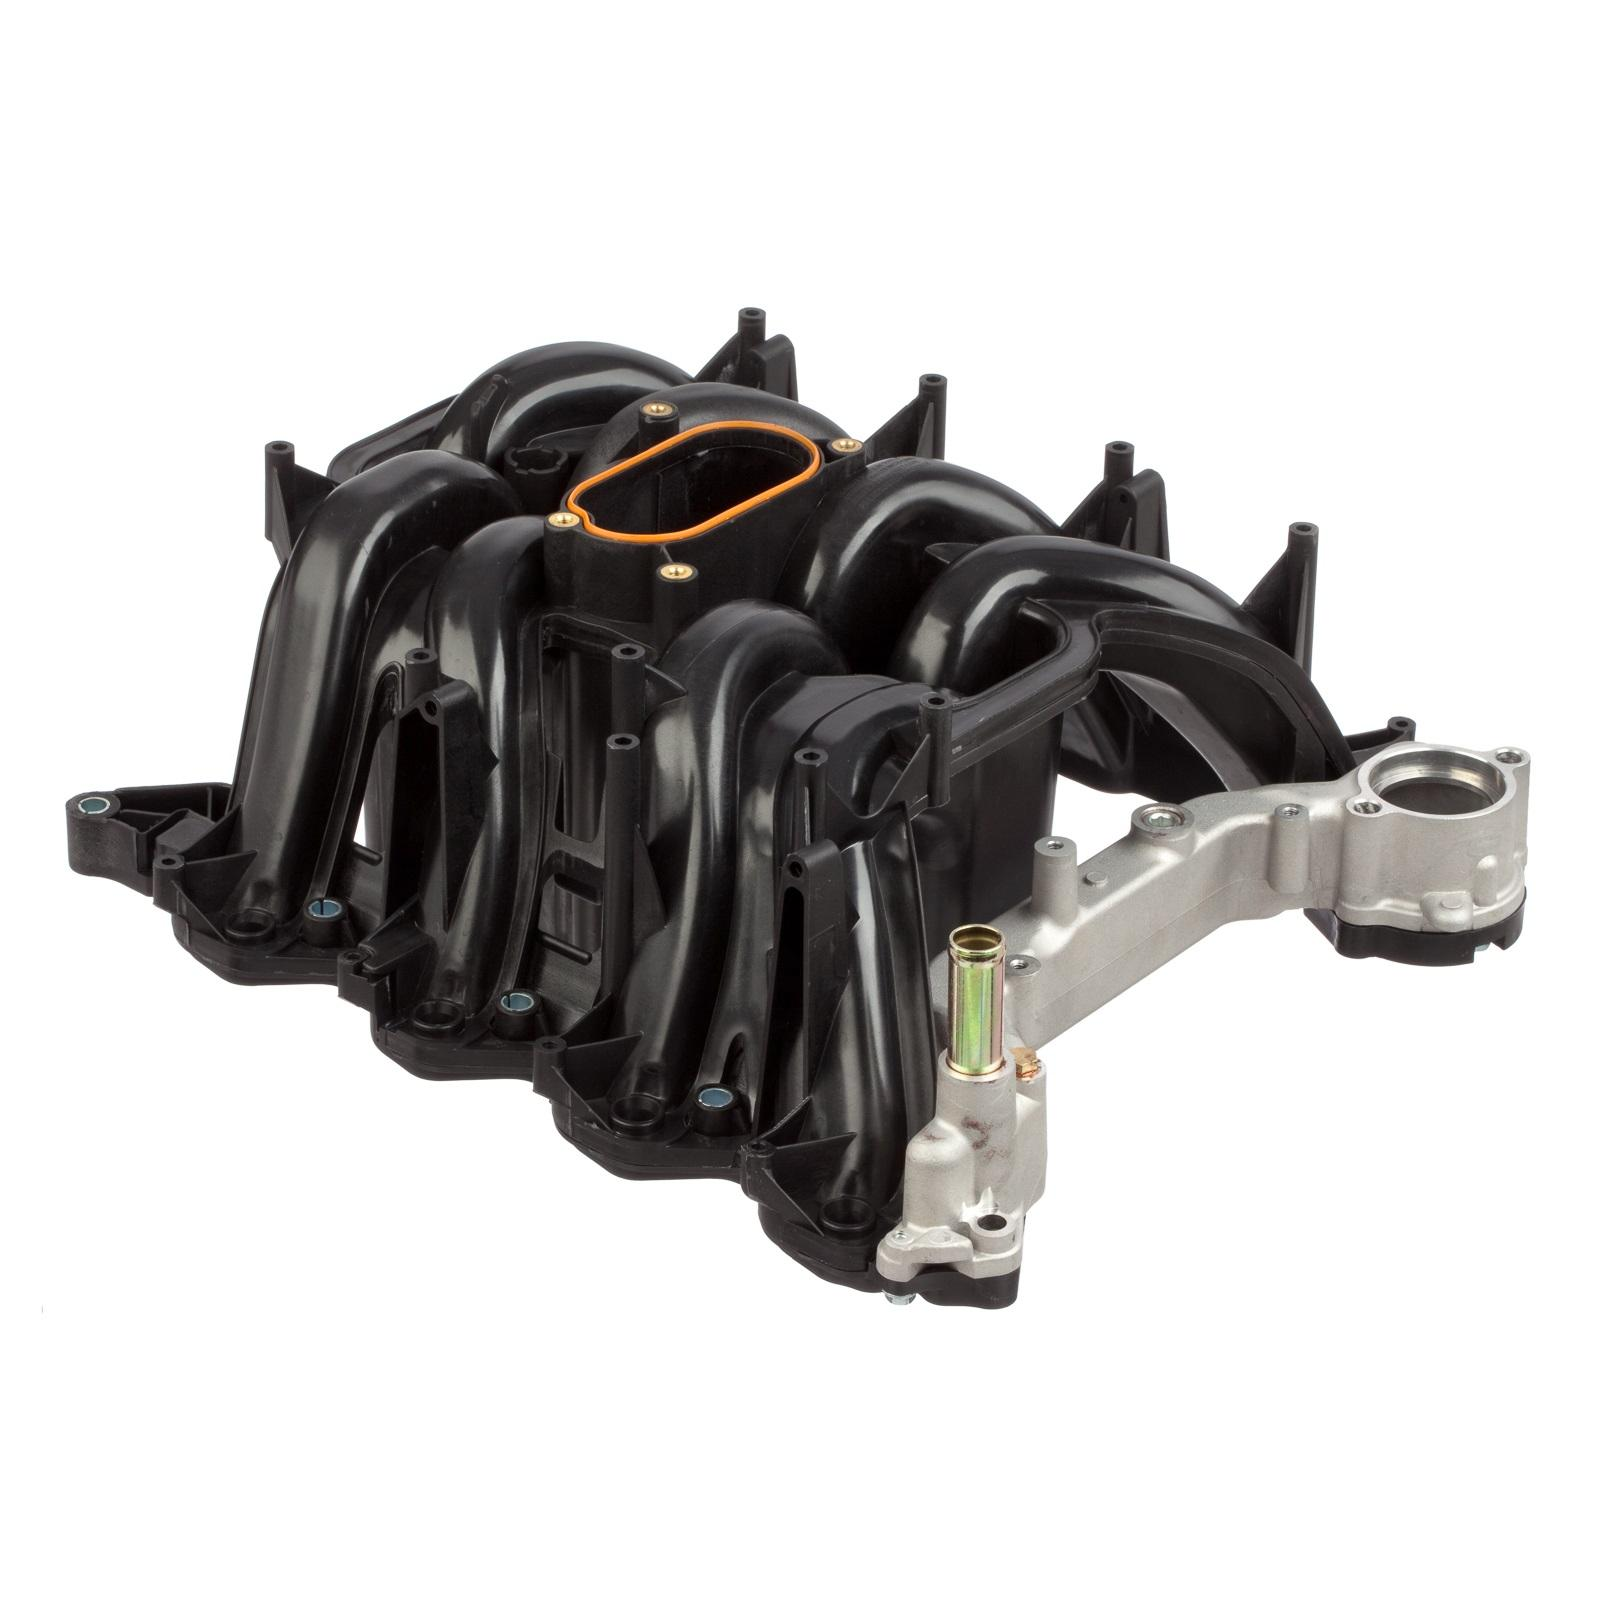 Engine Intake Manifold : Amazon atp automotive engine intake manifold